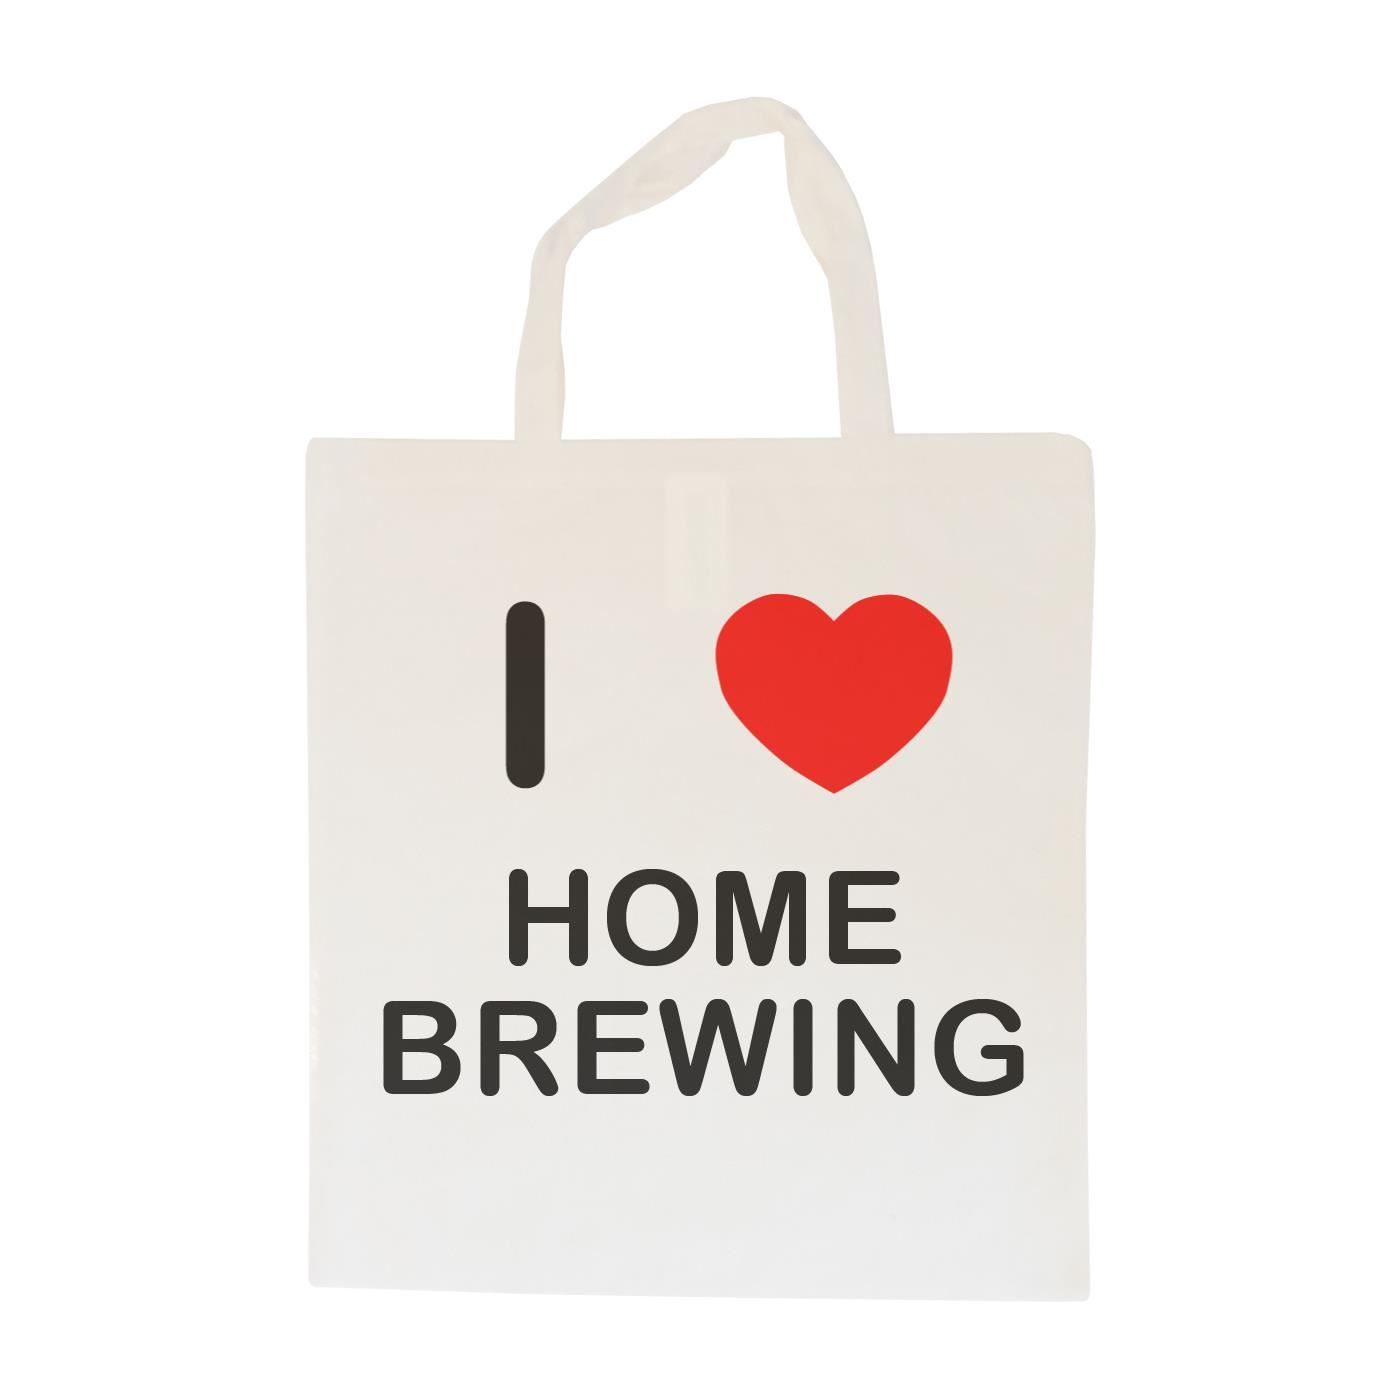 I Love Home Brewing - Cotton Bag | Size choice Tote, Shopper or Sling